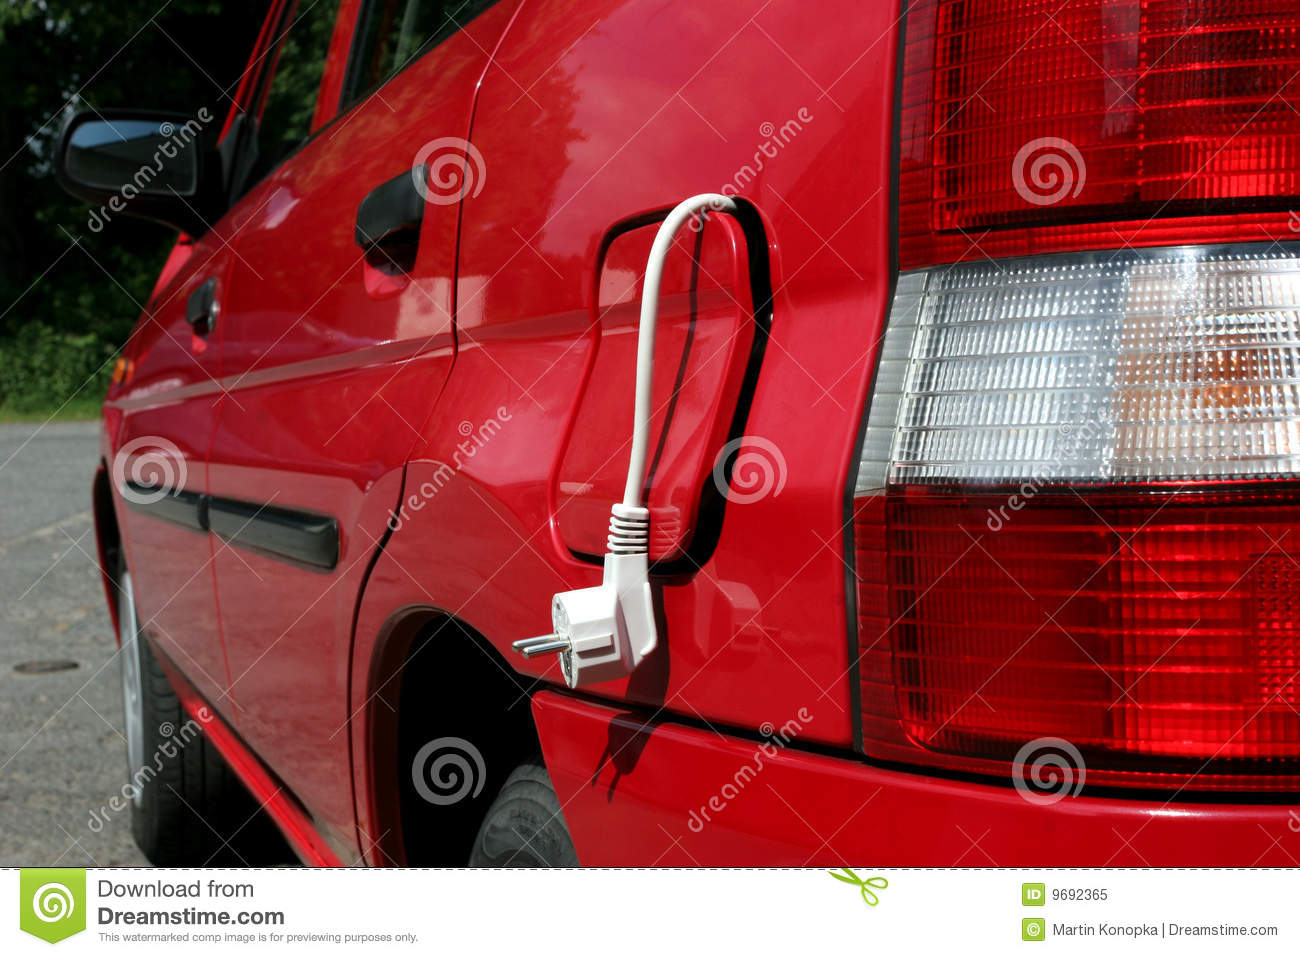 are electric cars a more sustainable Electric vehicles offer a cleaner alternative, especially as more renewable energy is incorporated into the power grid a recent study, factoring in emississions.